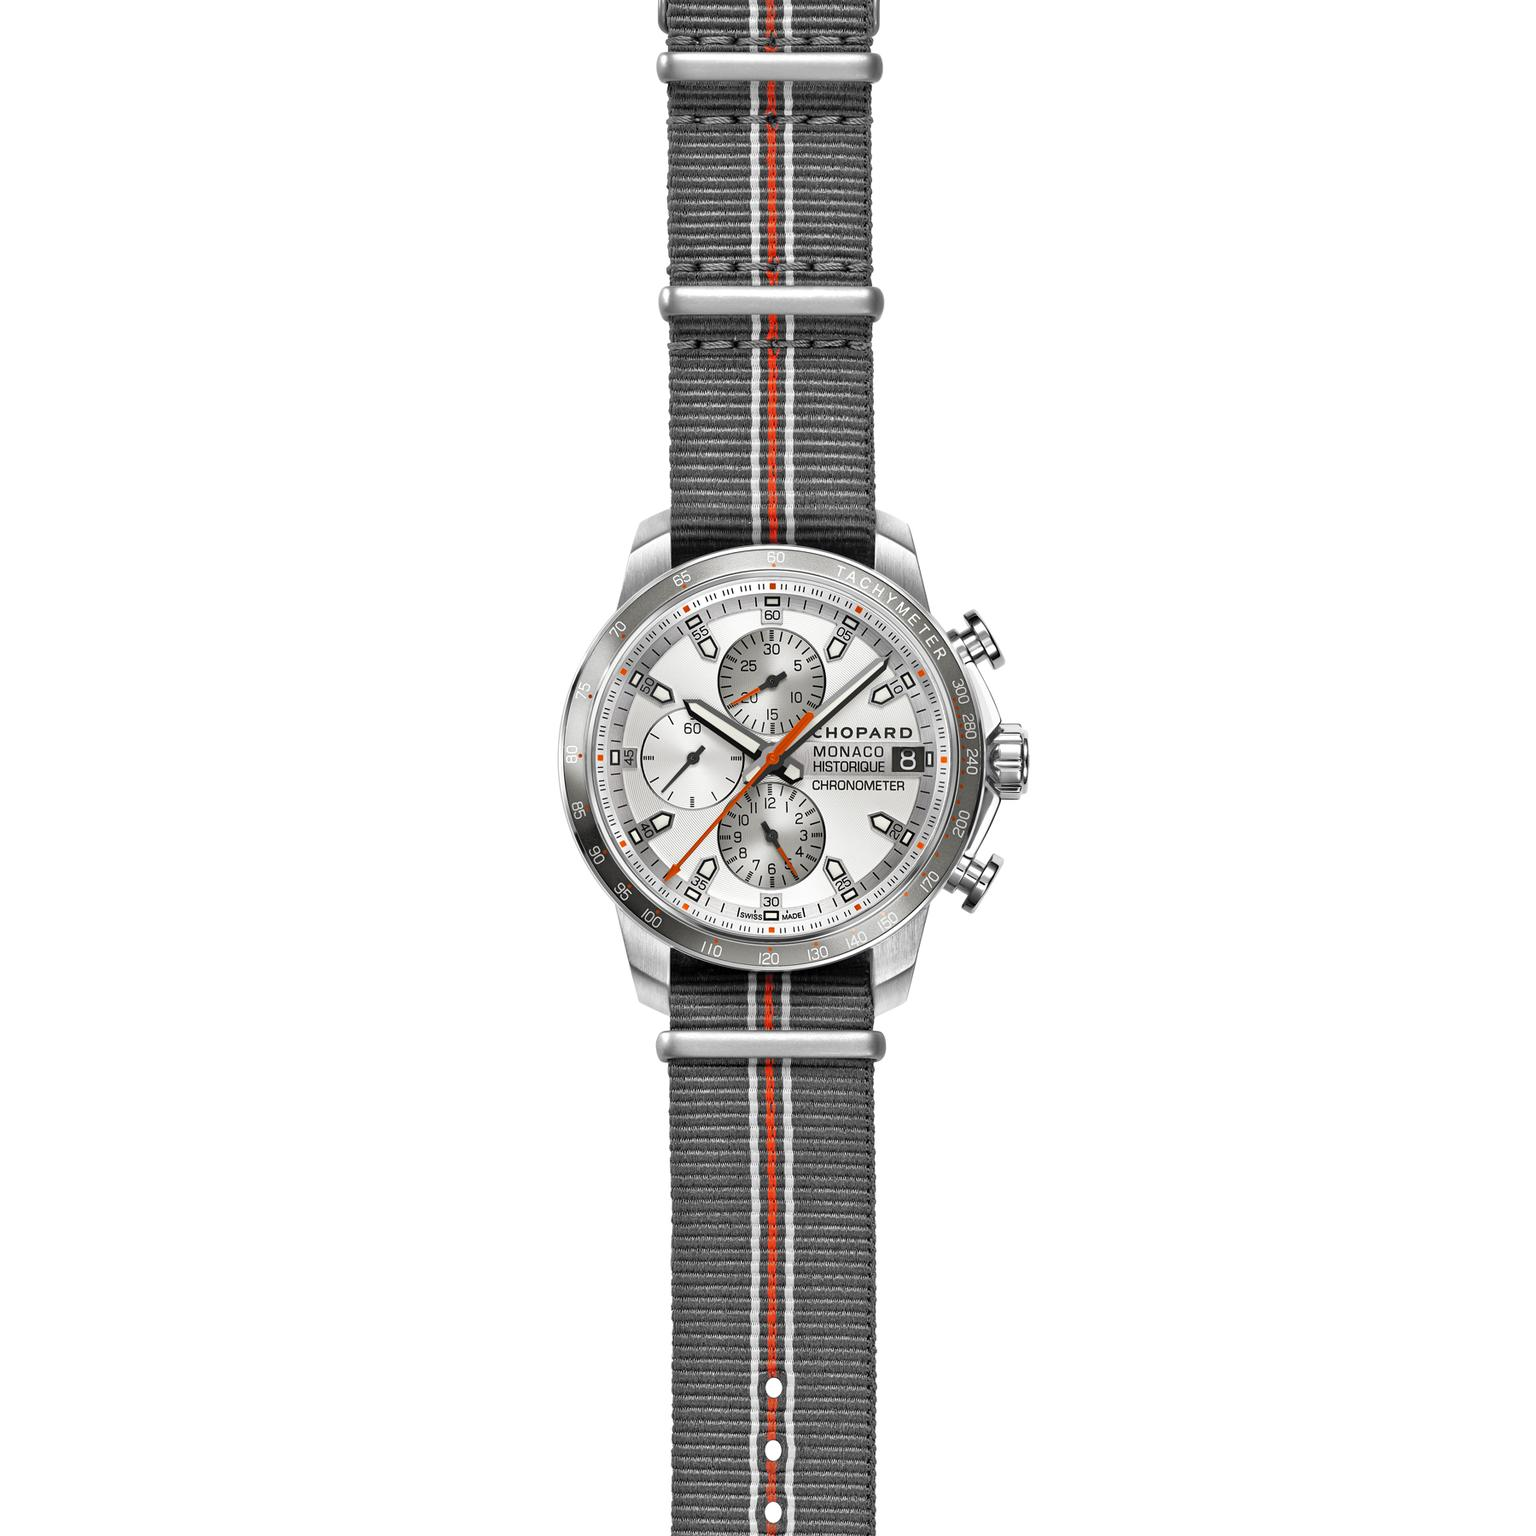 Chopard Grand Prix Monaco Historique chronograph with NATO strap